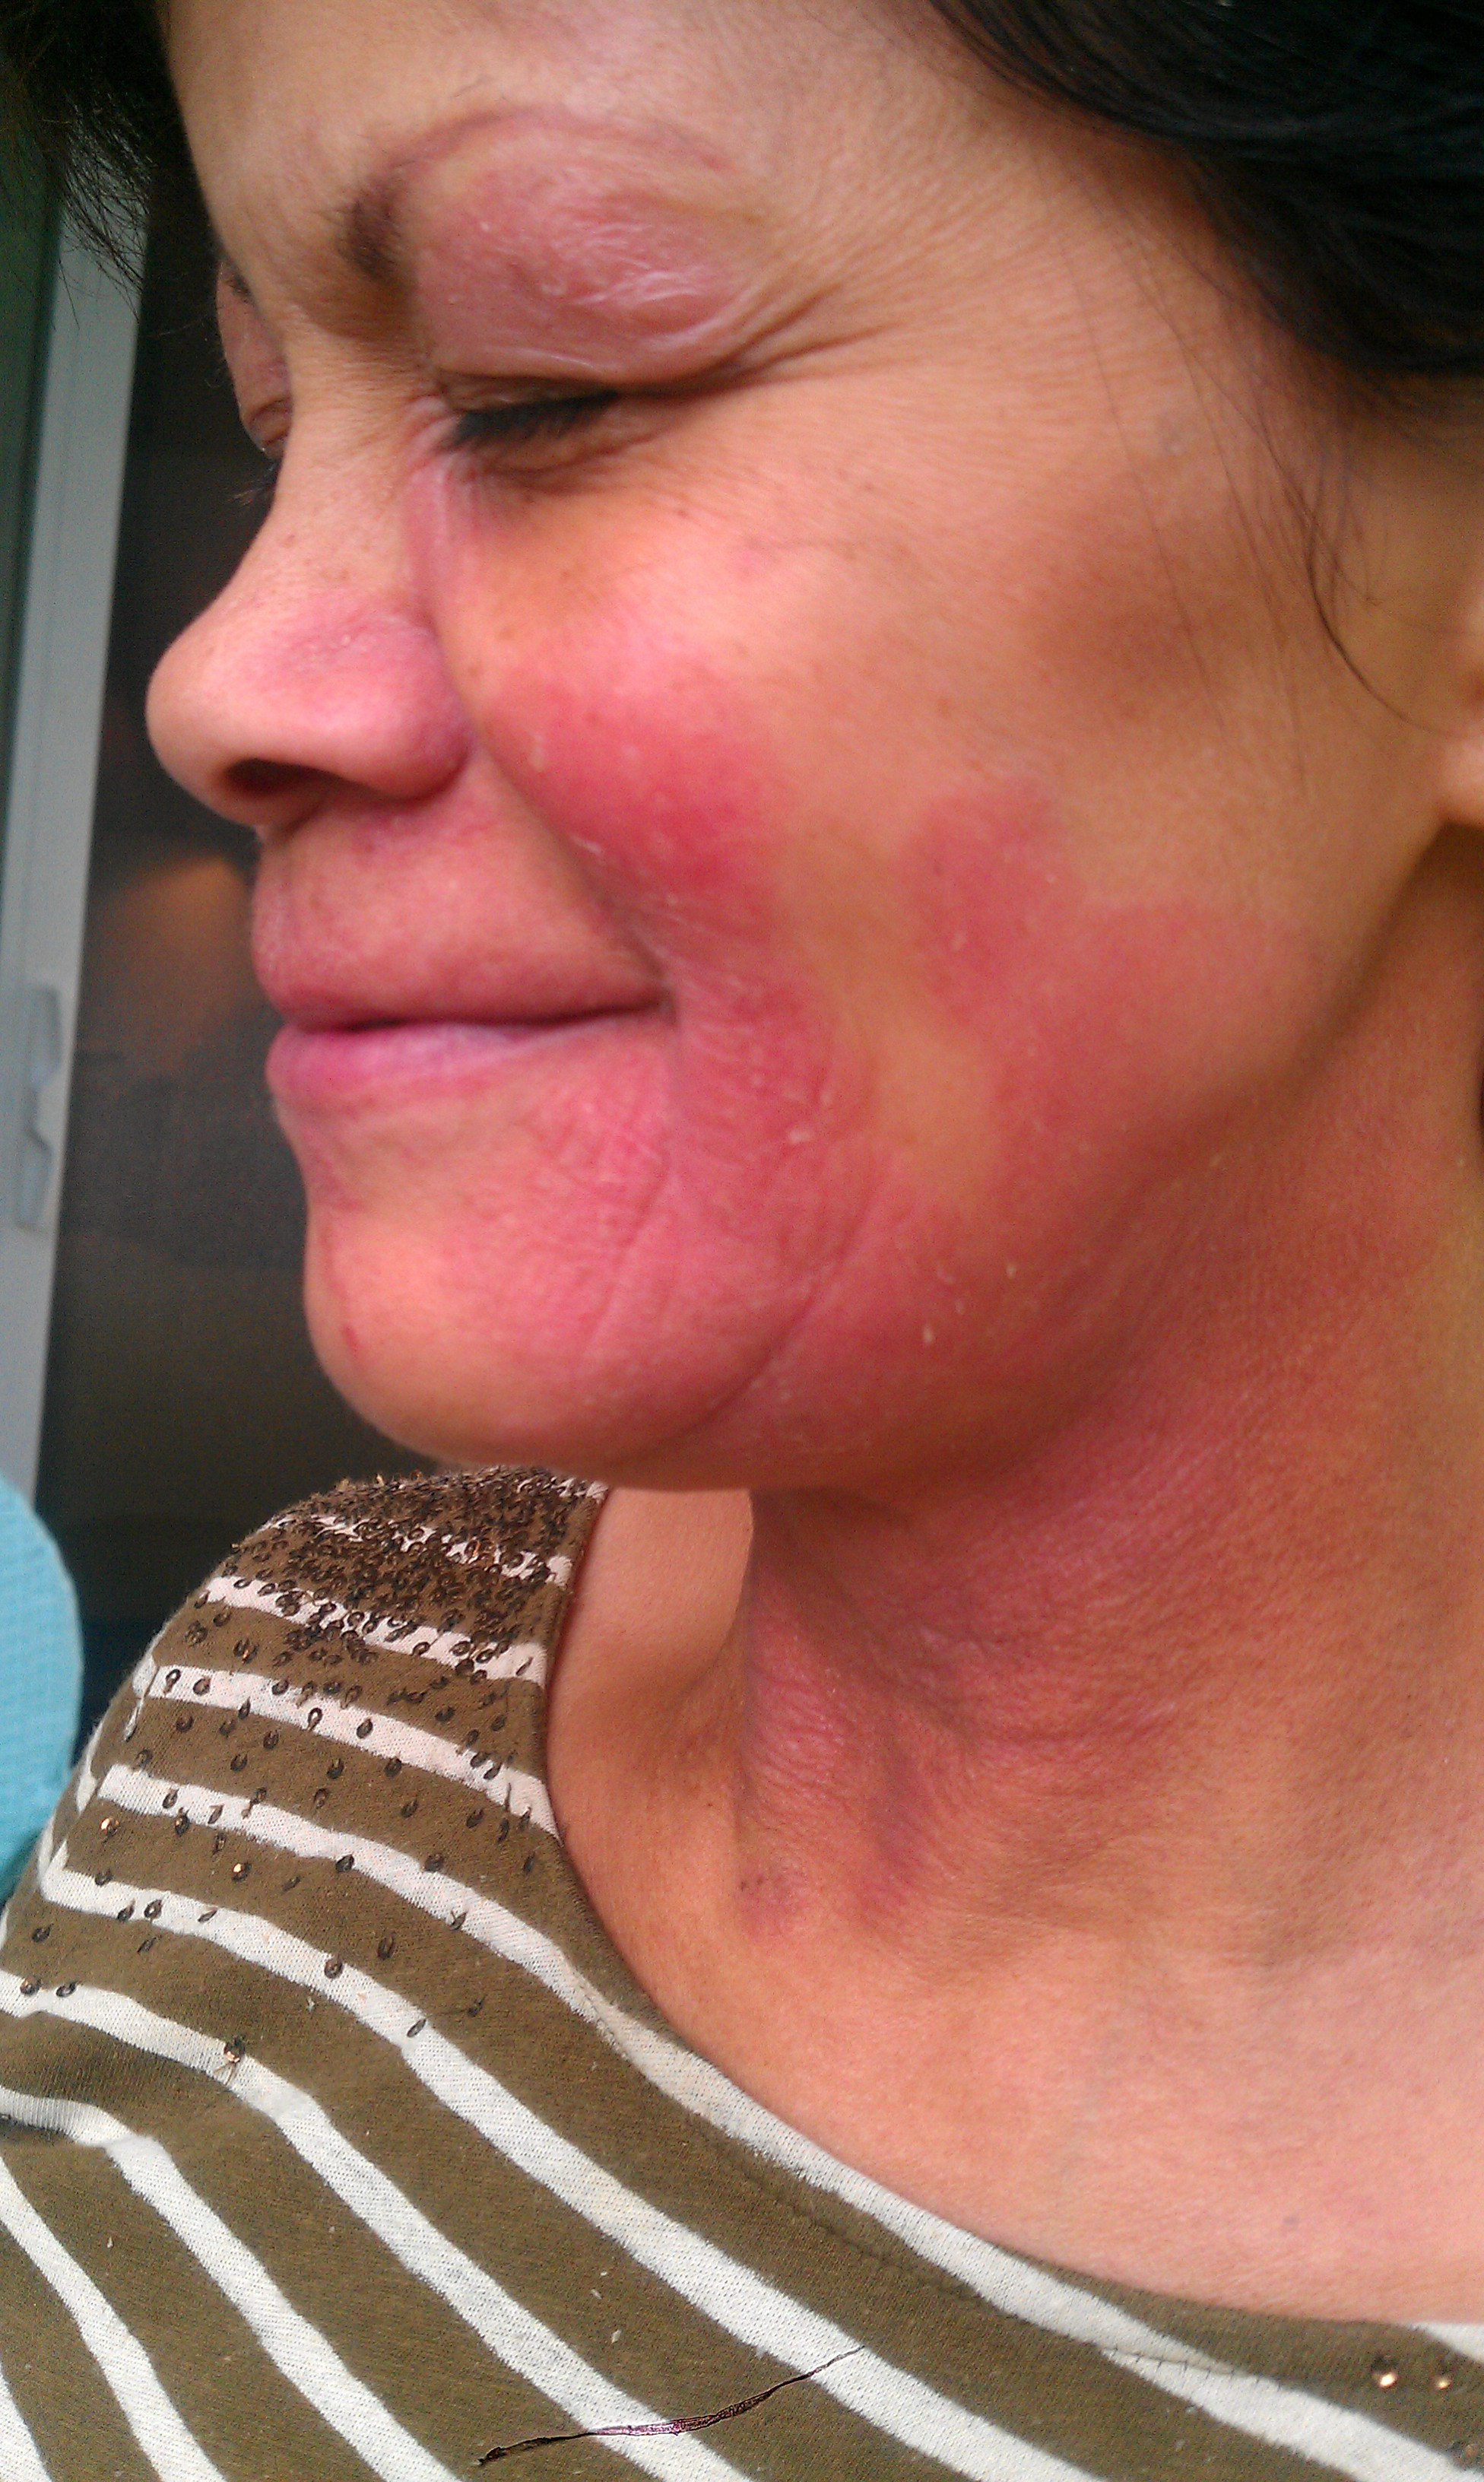 Allergic facial rash